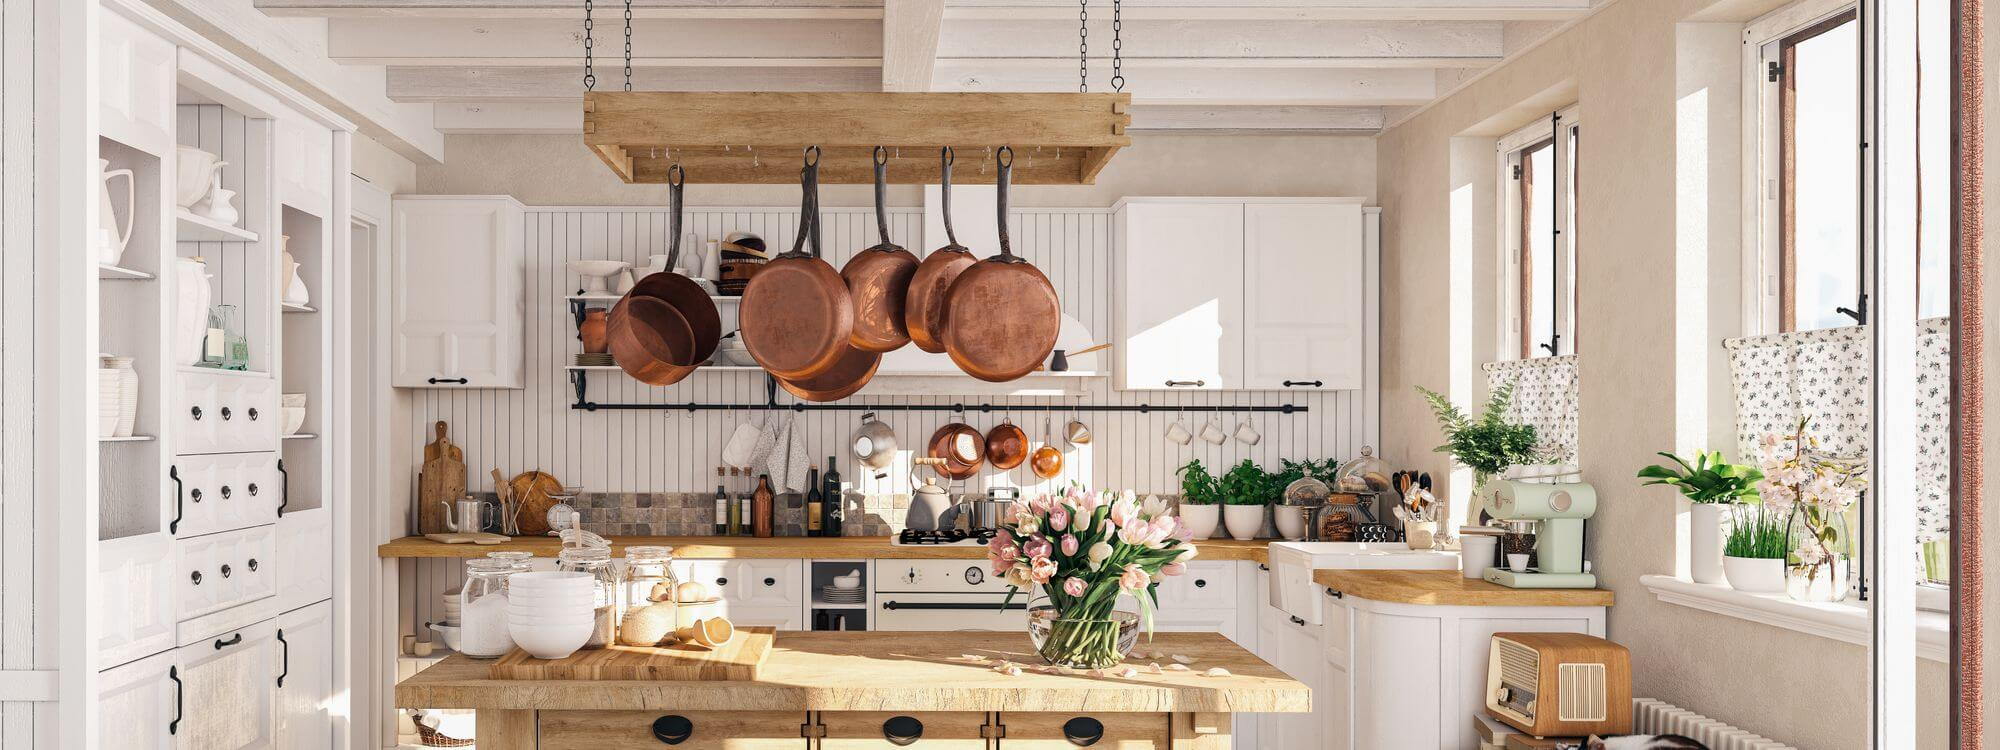 How To Turn Your Hobby Into An Income Generator: Explore The Business Of Home Kitchens!